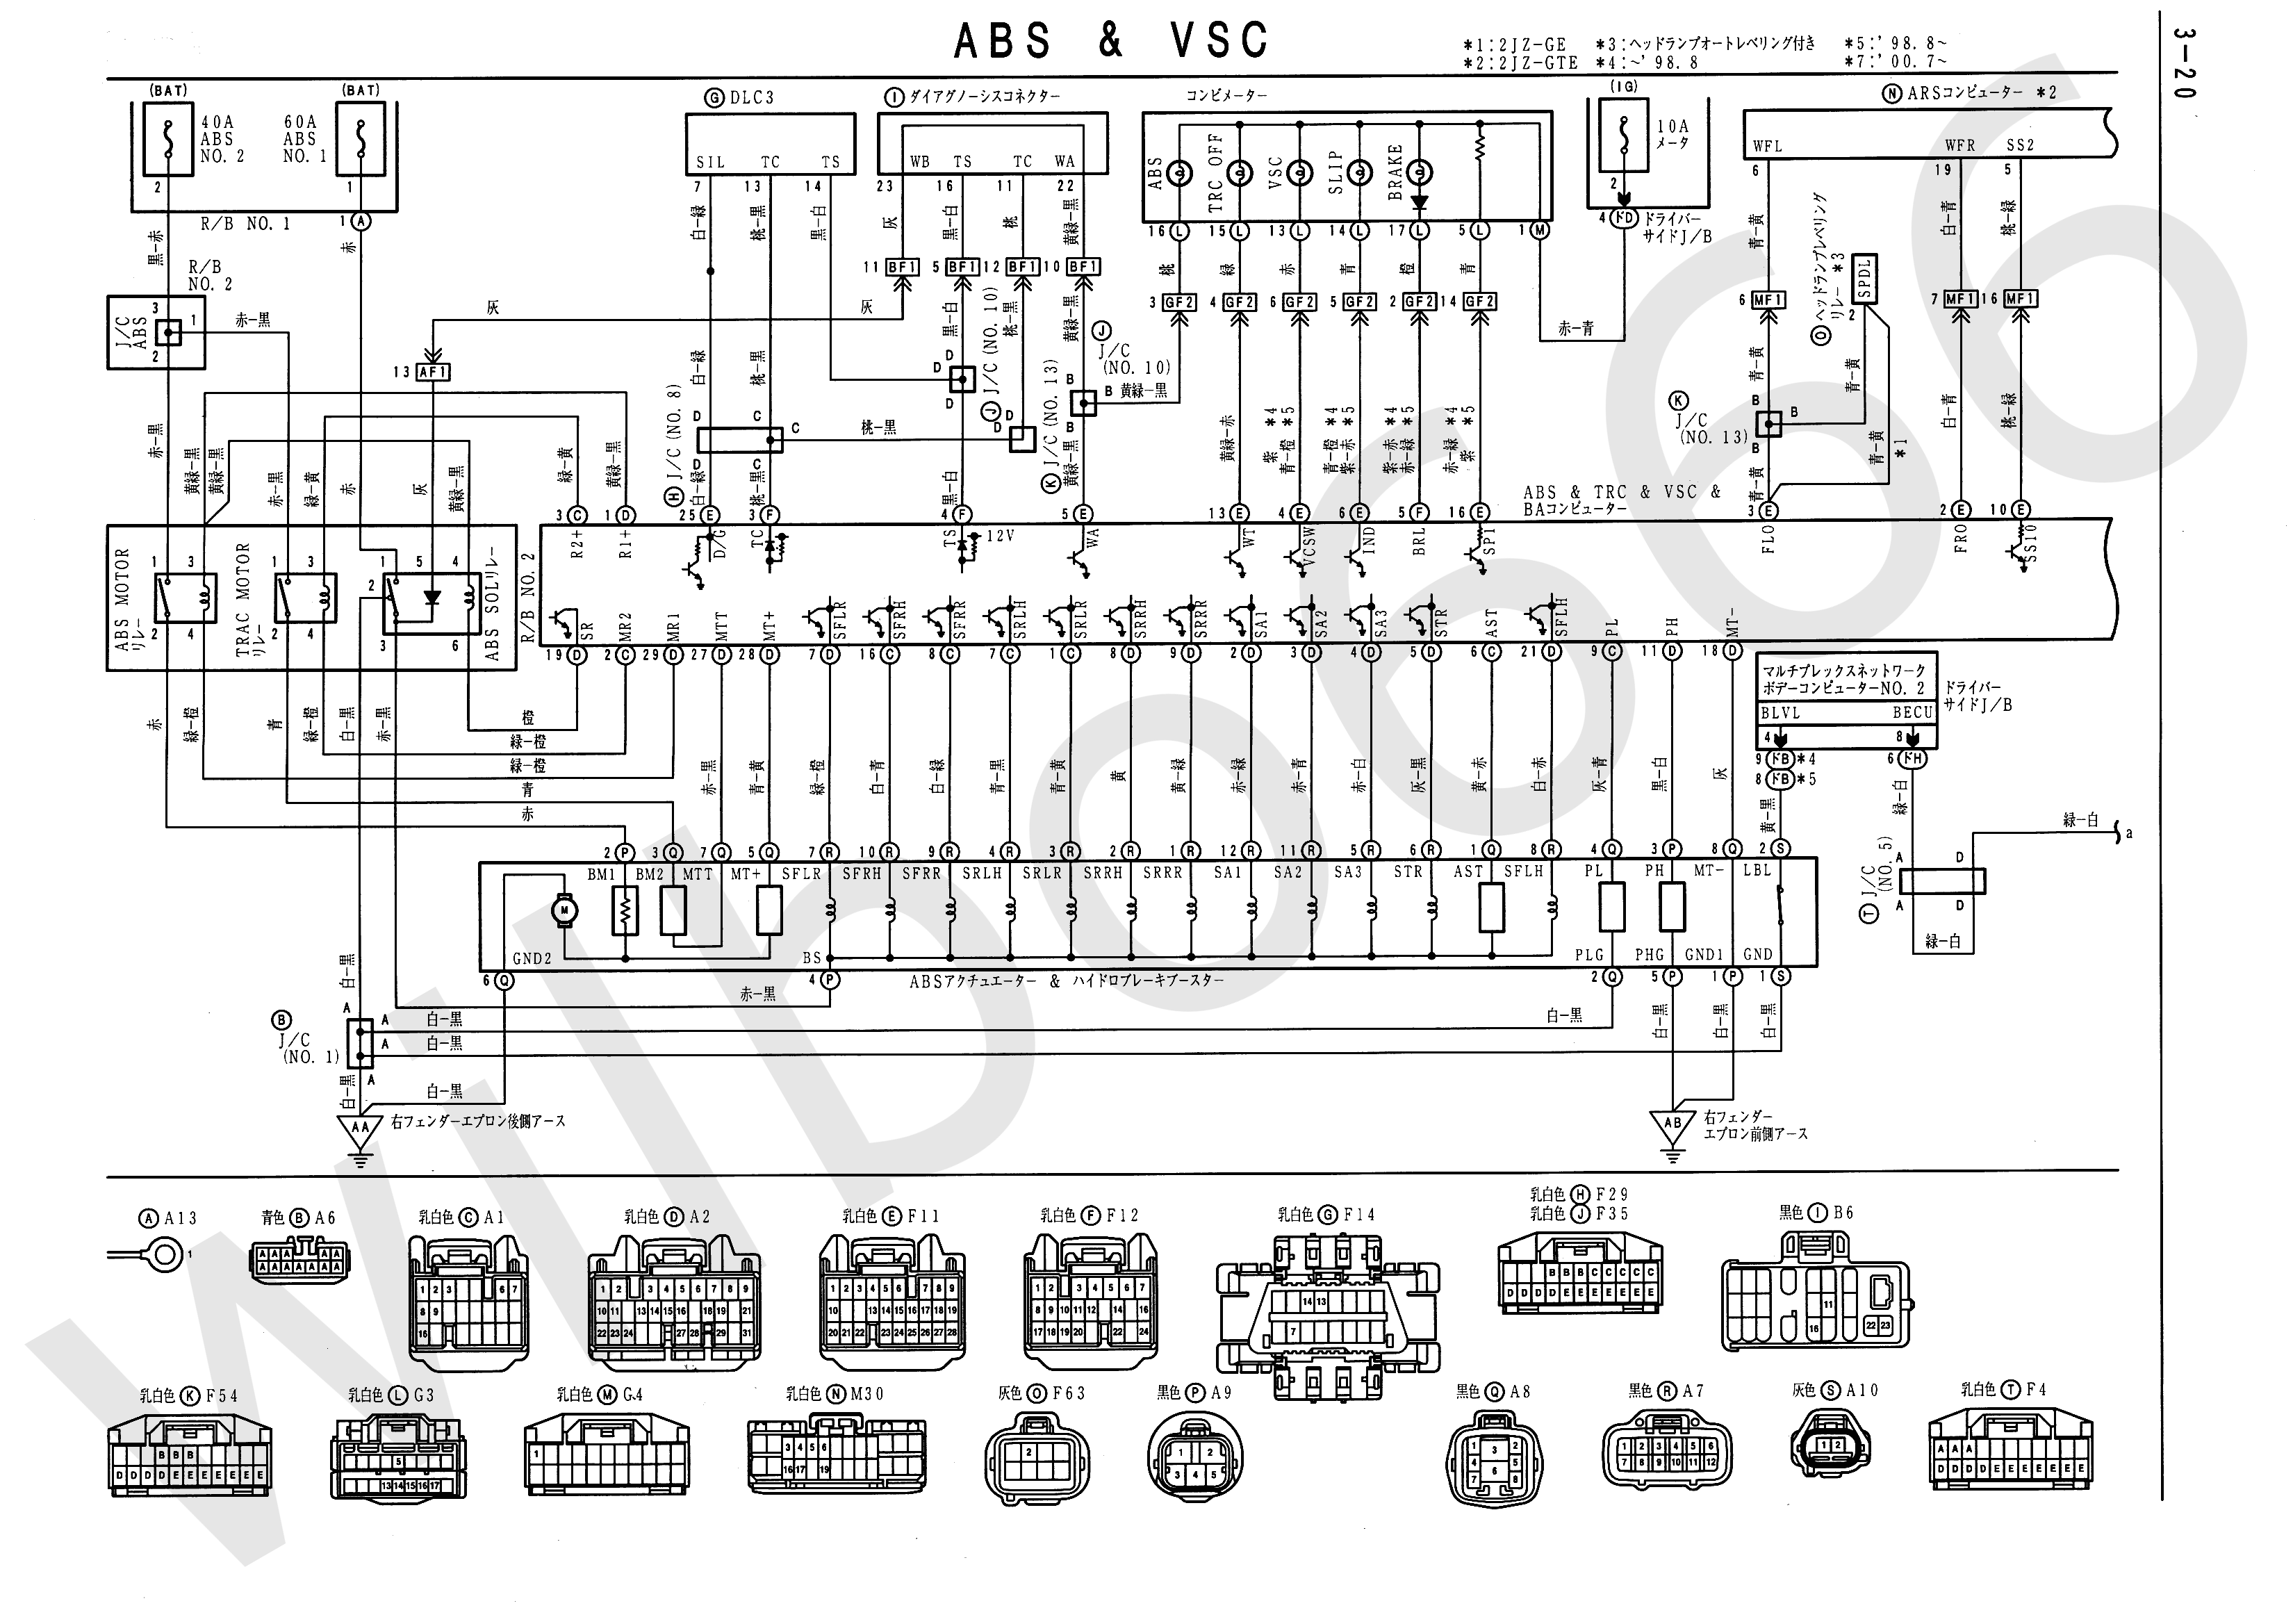 JZS161 Electrical Wiring Diagram 6748505 3 20?resize\\\\\\\\\\\\\\\\\\\\\\\\\\\\\\\\\\\\\\\\\\\\\\\\\\\\\\\\\\\\\\\\\\\\\\\\\\\\\\\\\\\\\\\\\\\\\\\\\\\\\\\=665%2C471 lennox furnace wiring diagram & solved wiring diagram for lexus is300 radio wiring diagram at mifinder.co